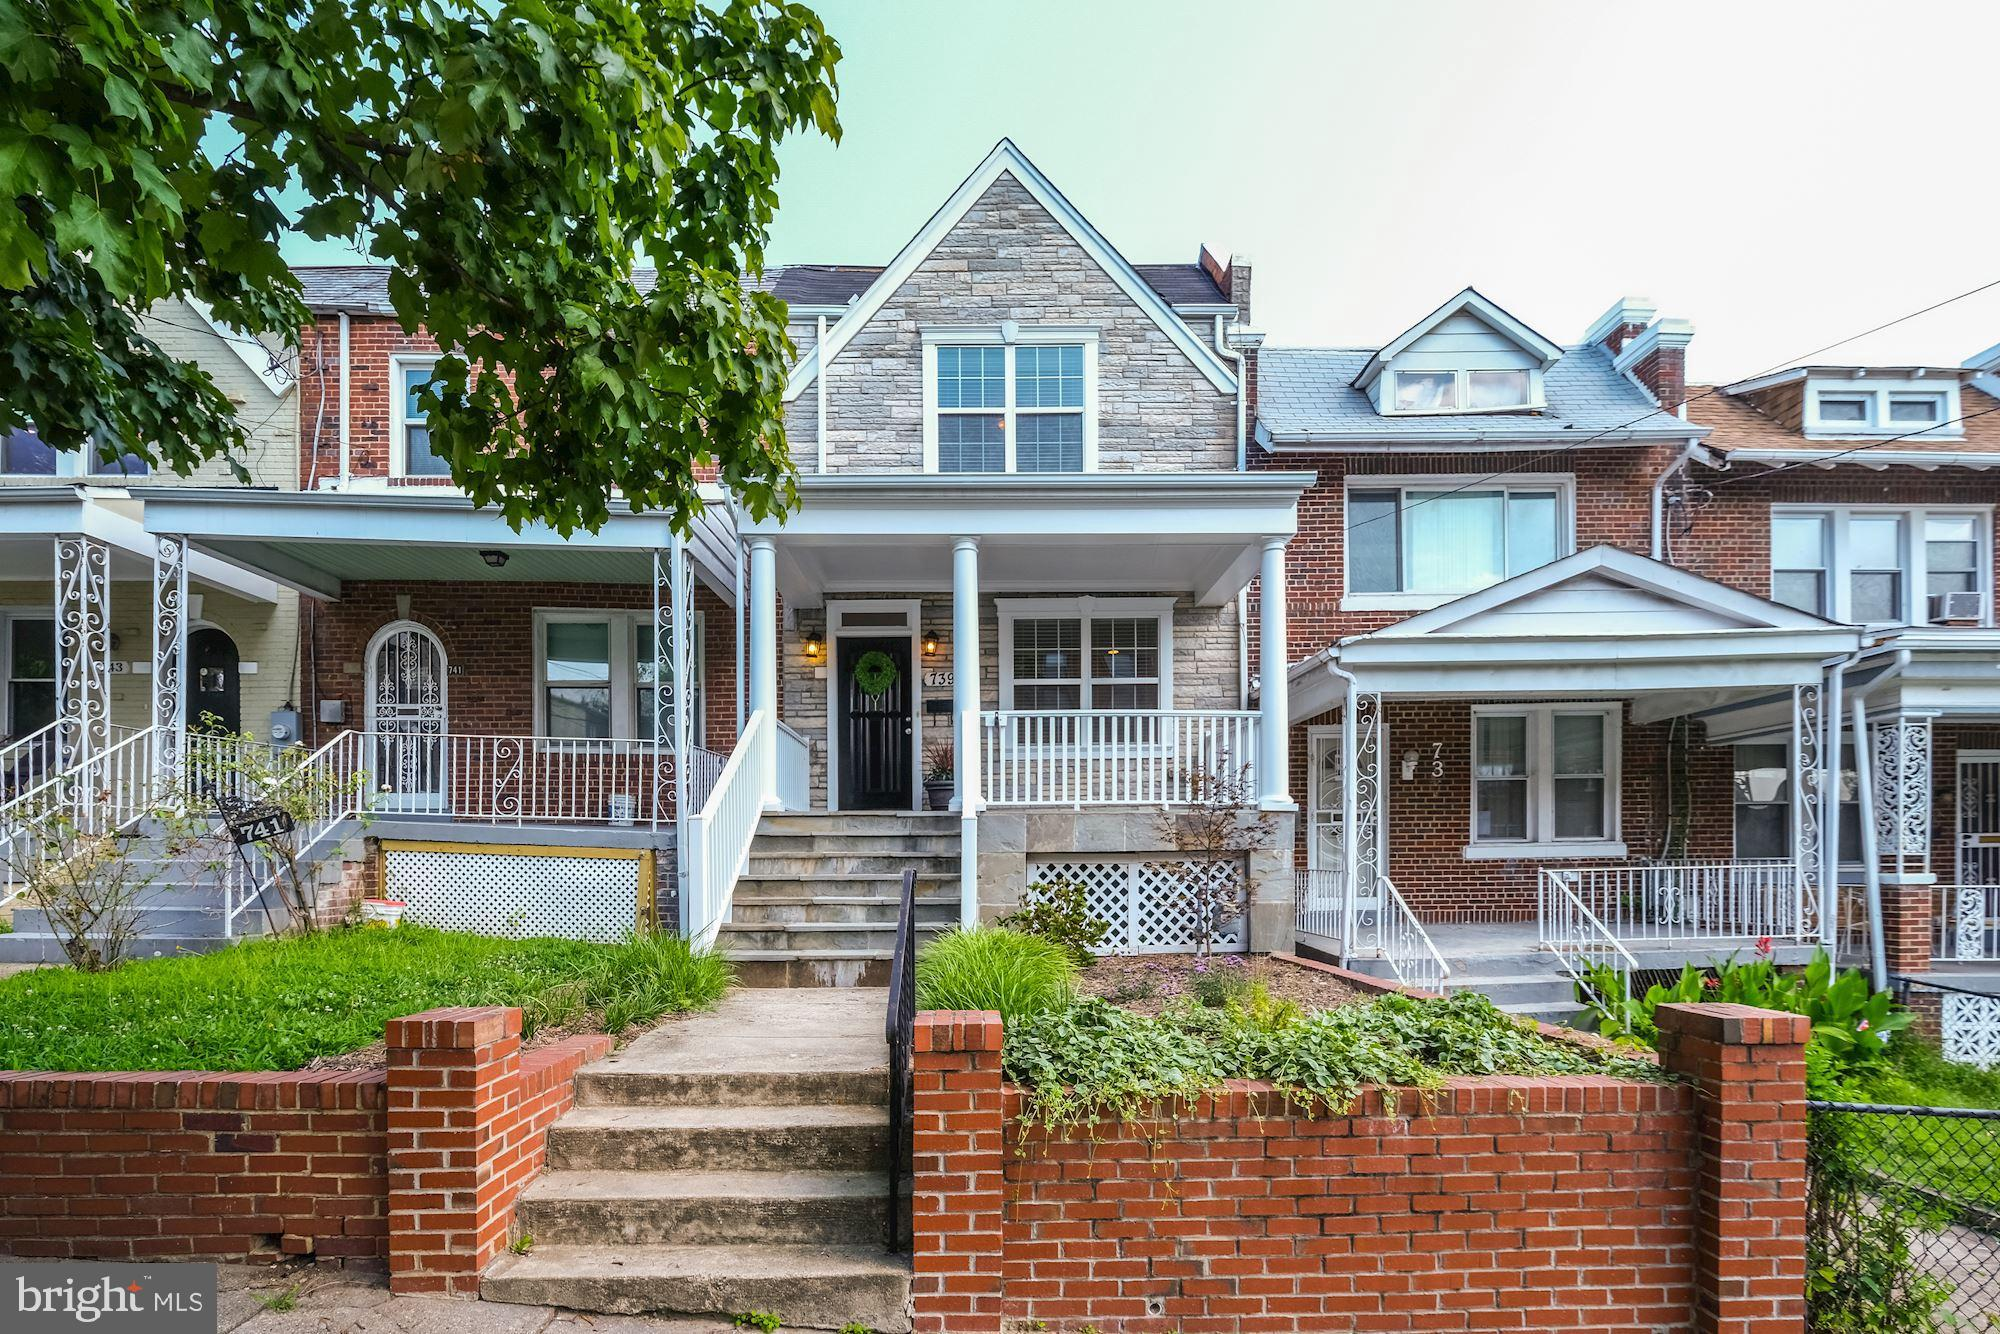 NEW LISTING!! Open Sunday, July 21st from 2 - 4 PM! Fully renovated 4 bed, 3 bath row home that pair